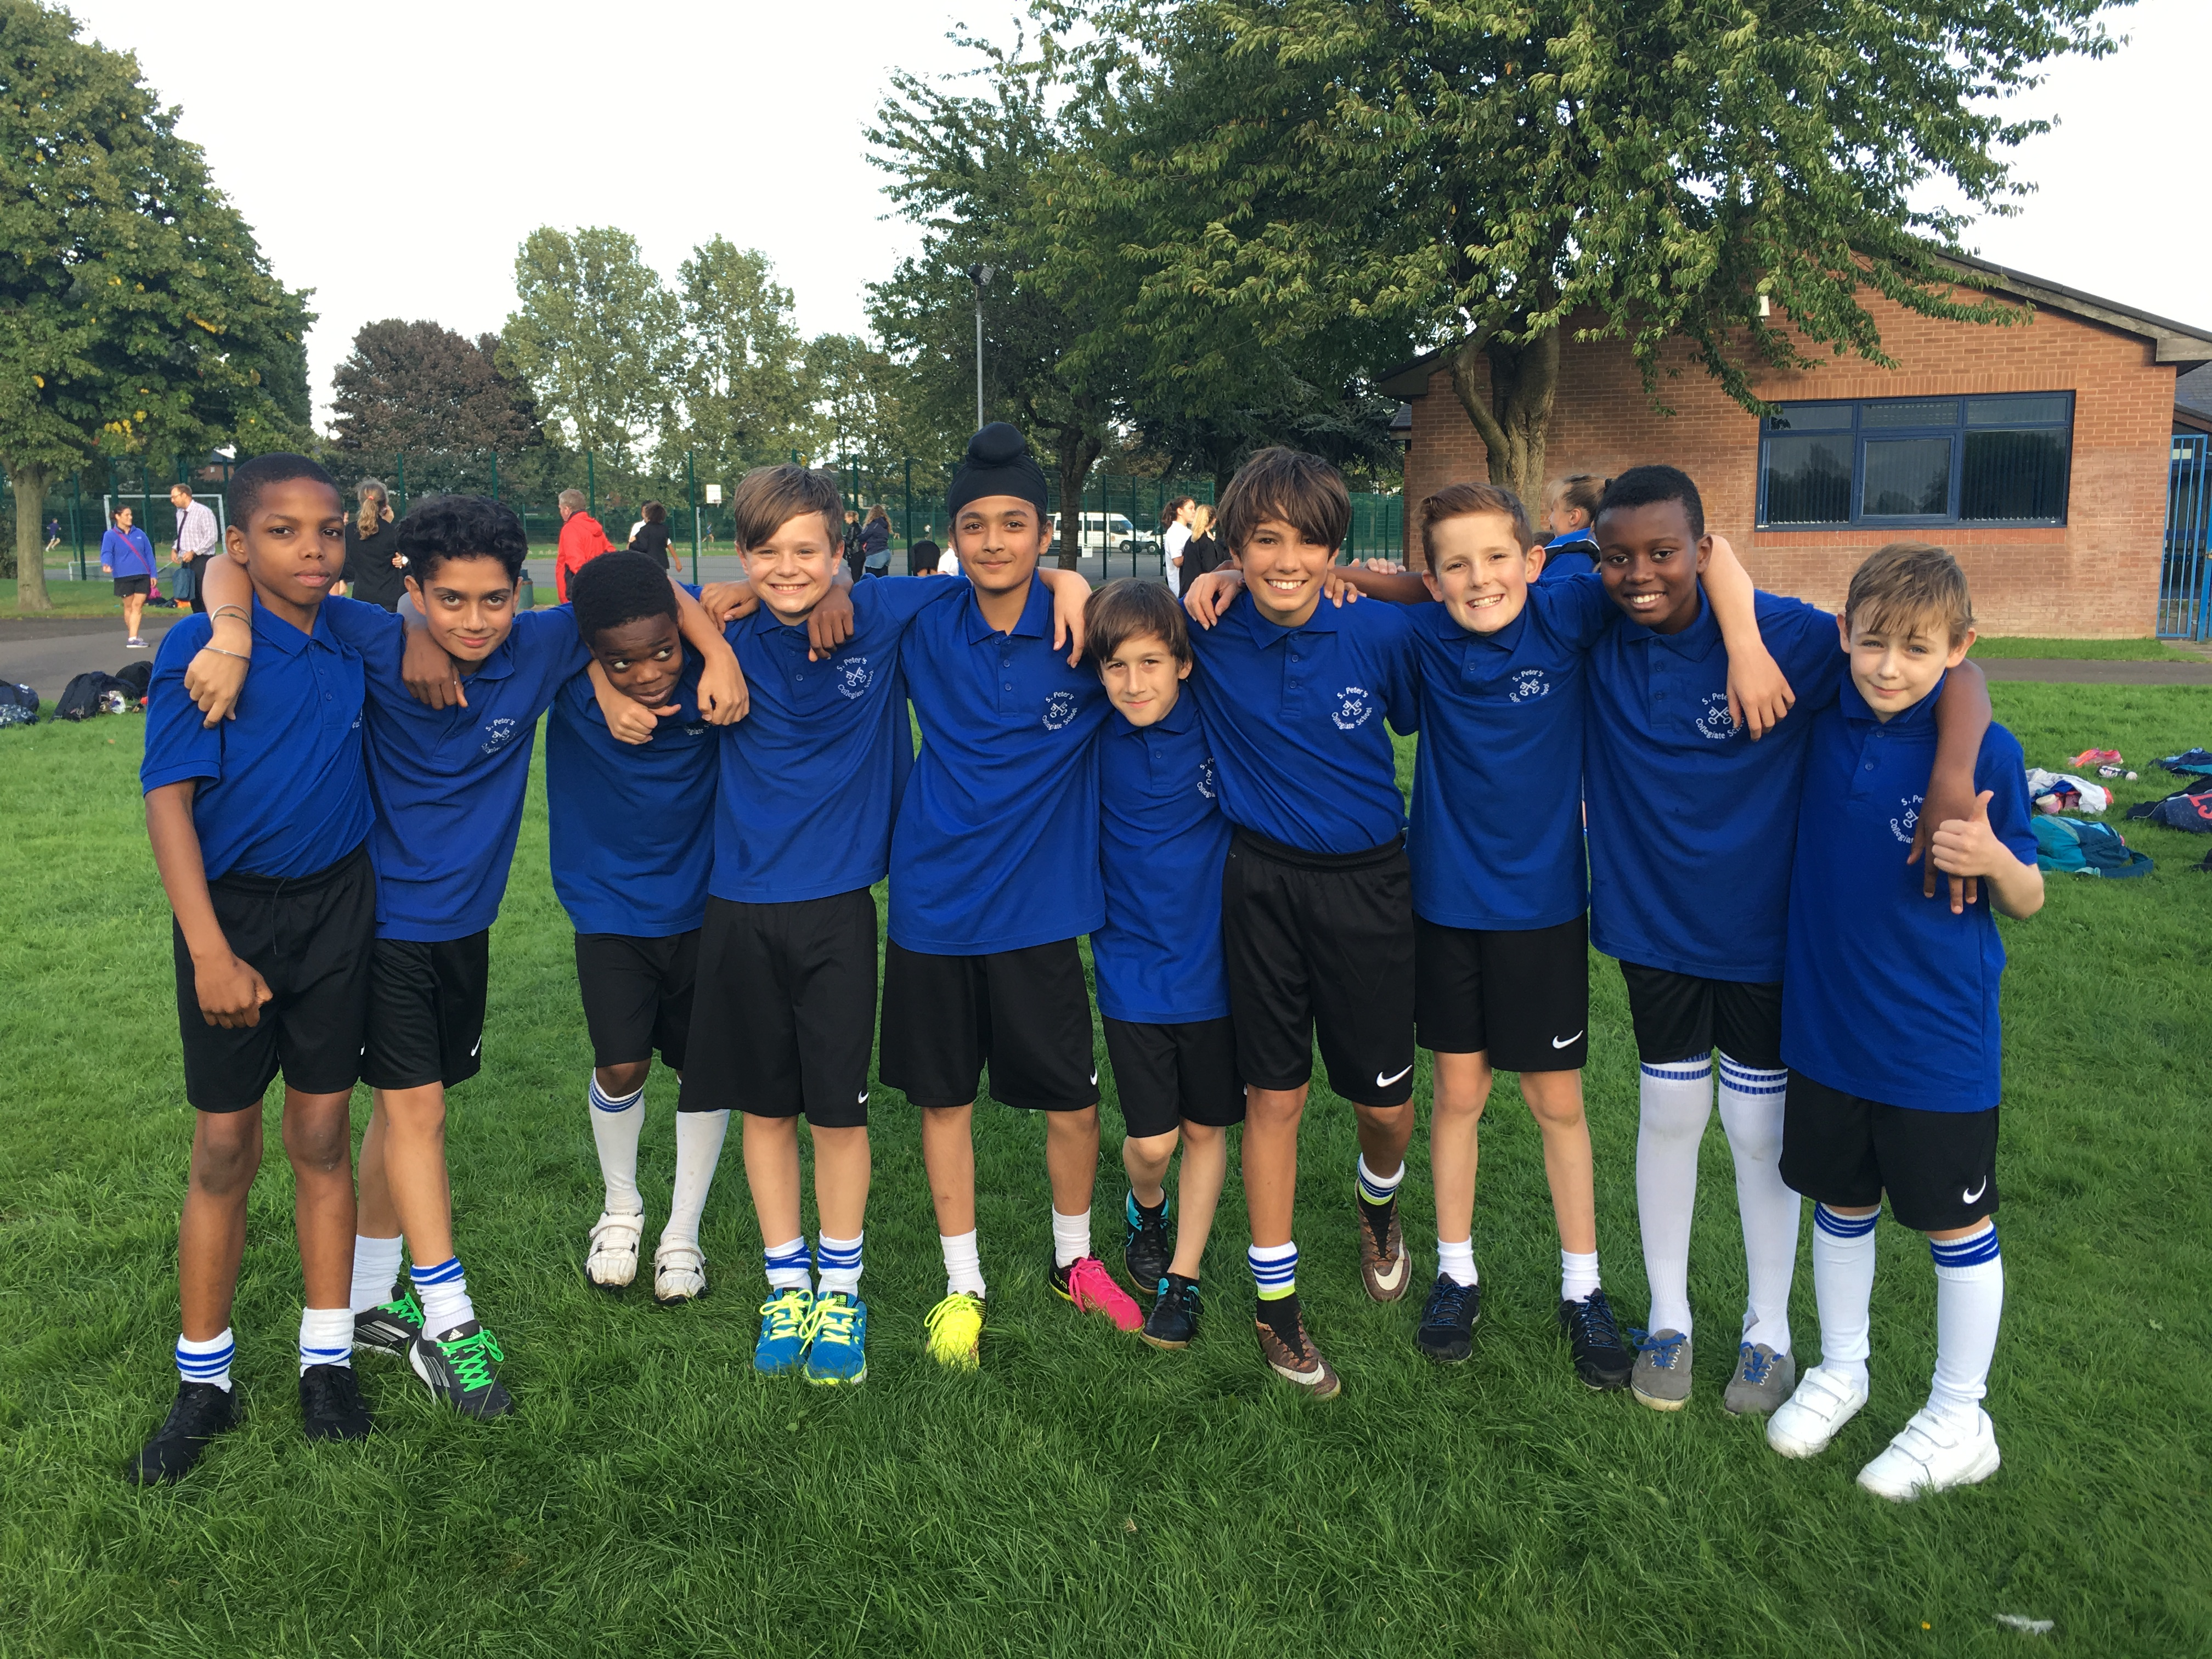 Year 7 boys Cross-Country team